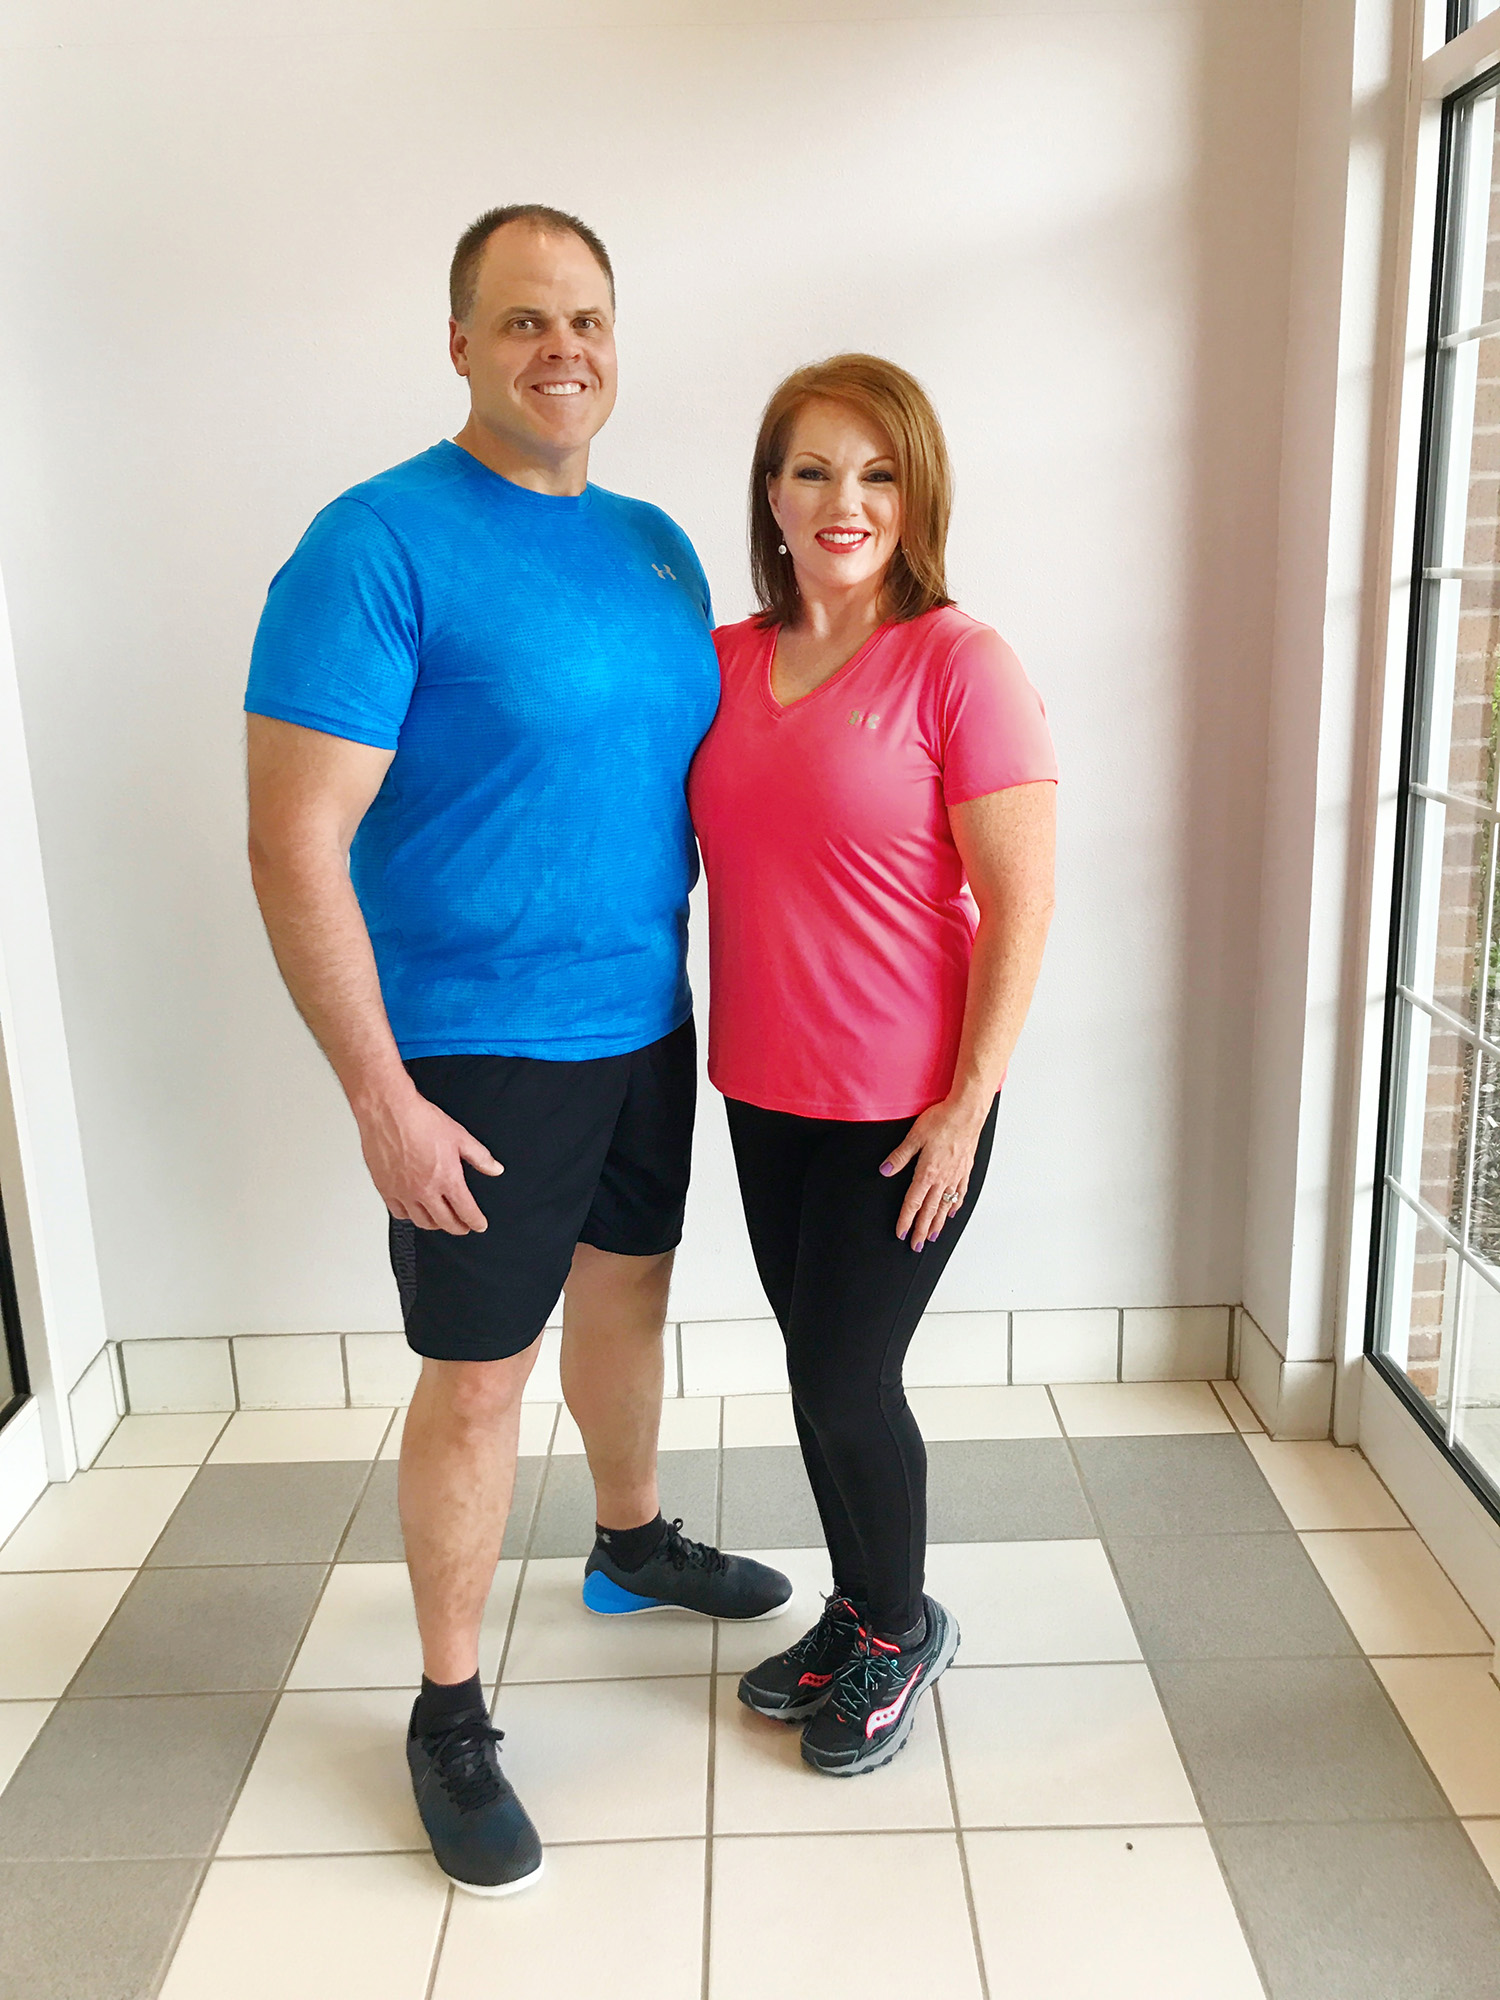 Husband and Wife Lost More Than 200 Lbs. by Embracing Health Together: 'We Keep Each Other Strong'